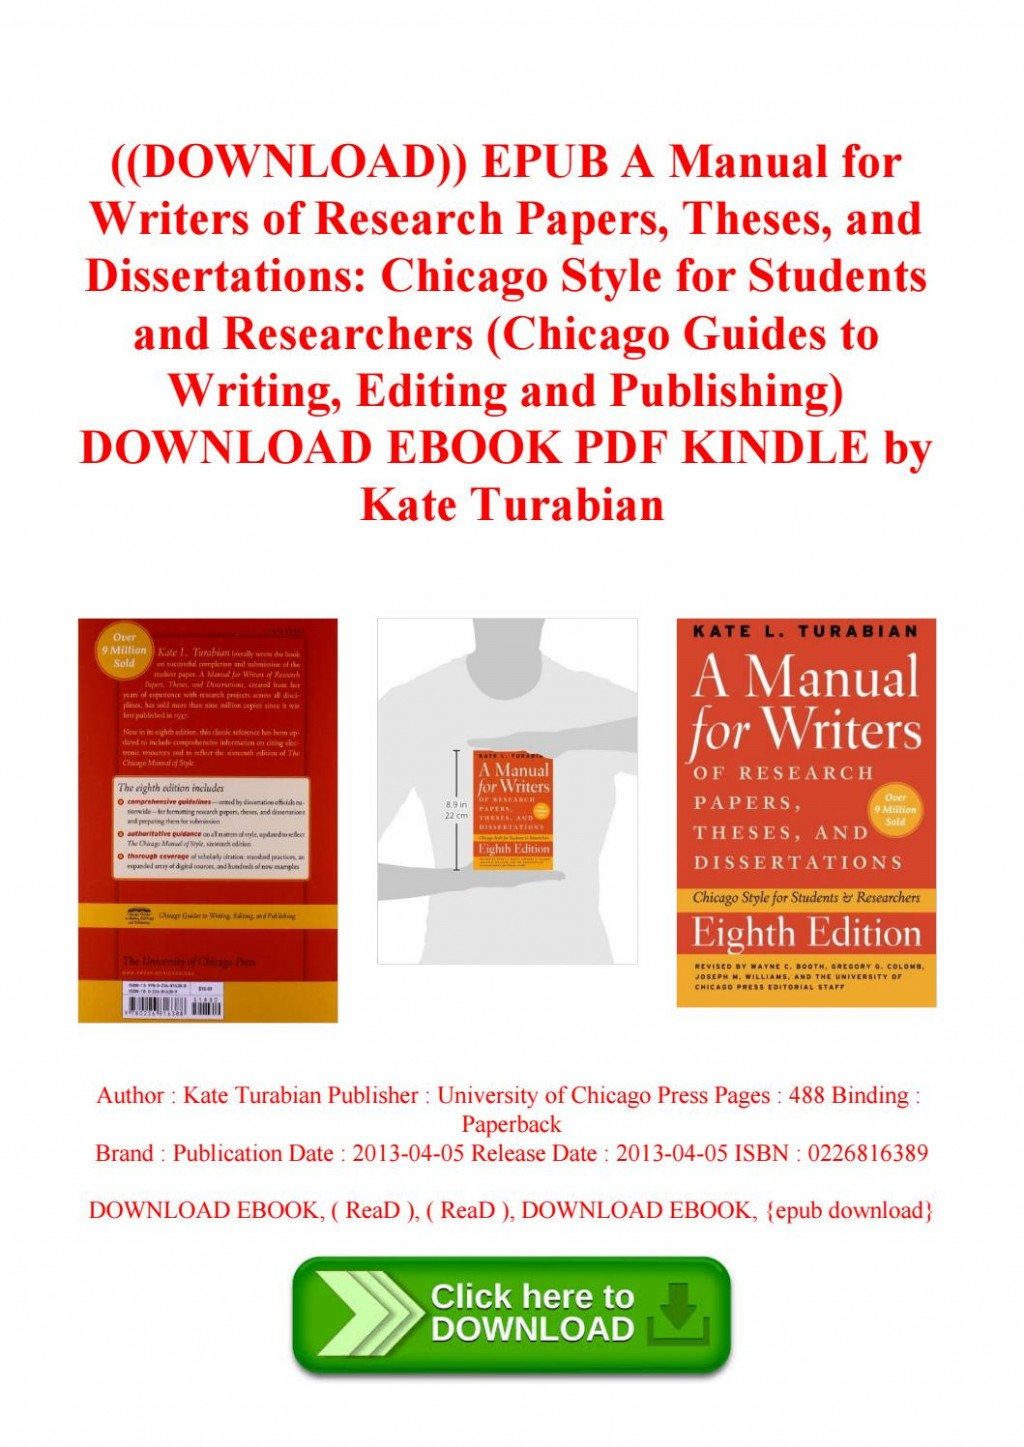 006 Page 1 Research Paper Manual For Writers Of Papers Theses And Sensational A Dissertations Eighth Edition Pdf 9th 8th Large